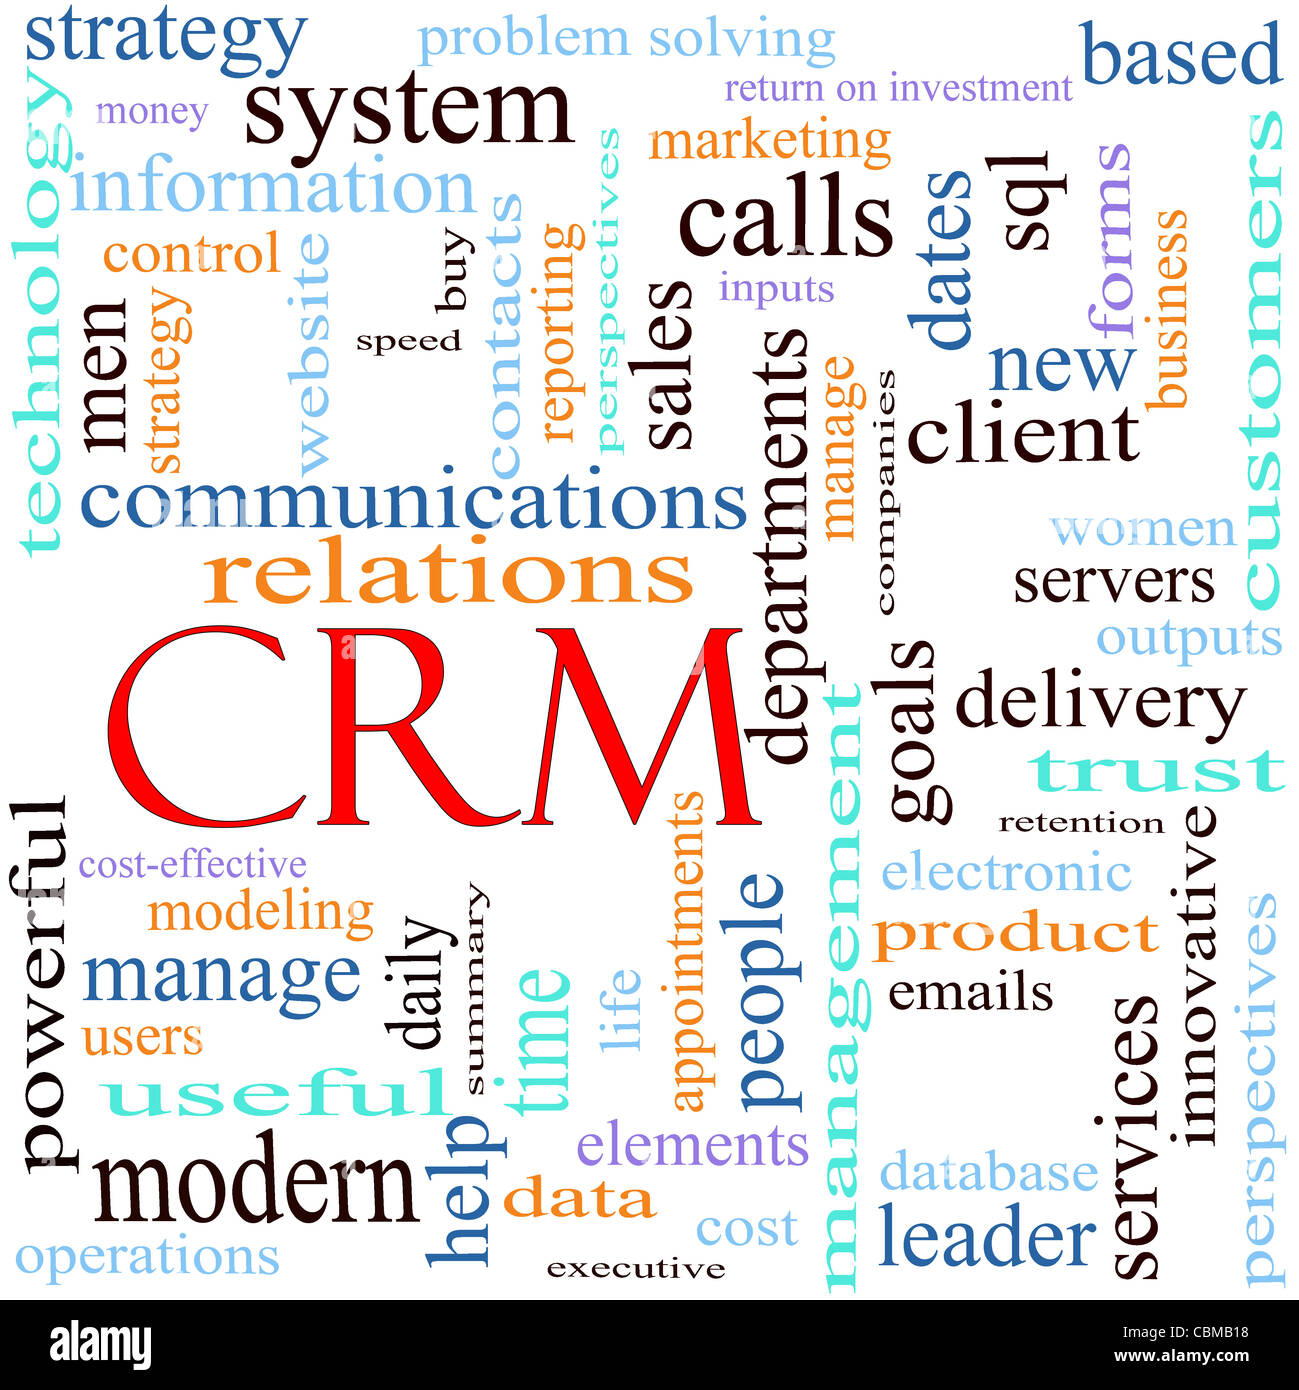 CRM Client Relationship Management system word cloud concept with Stock Photo Royalty Free